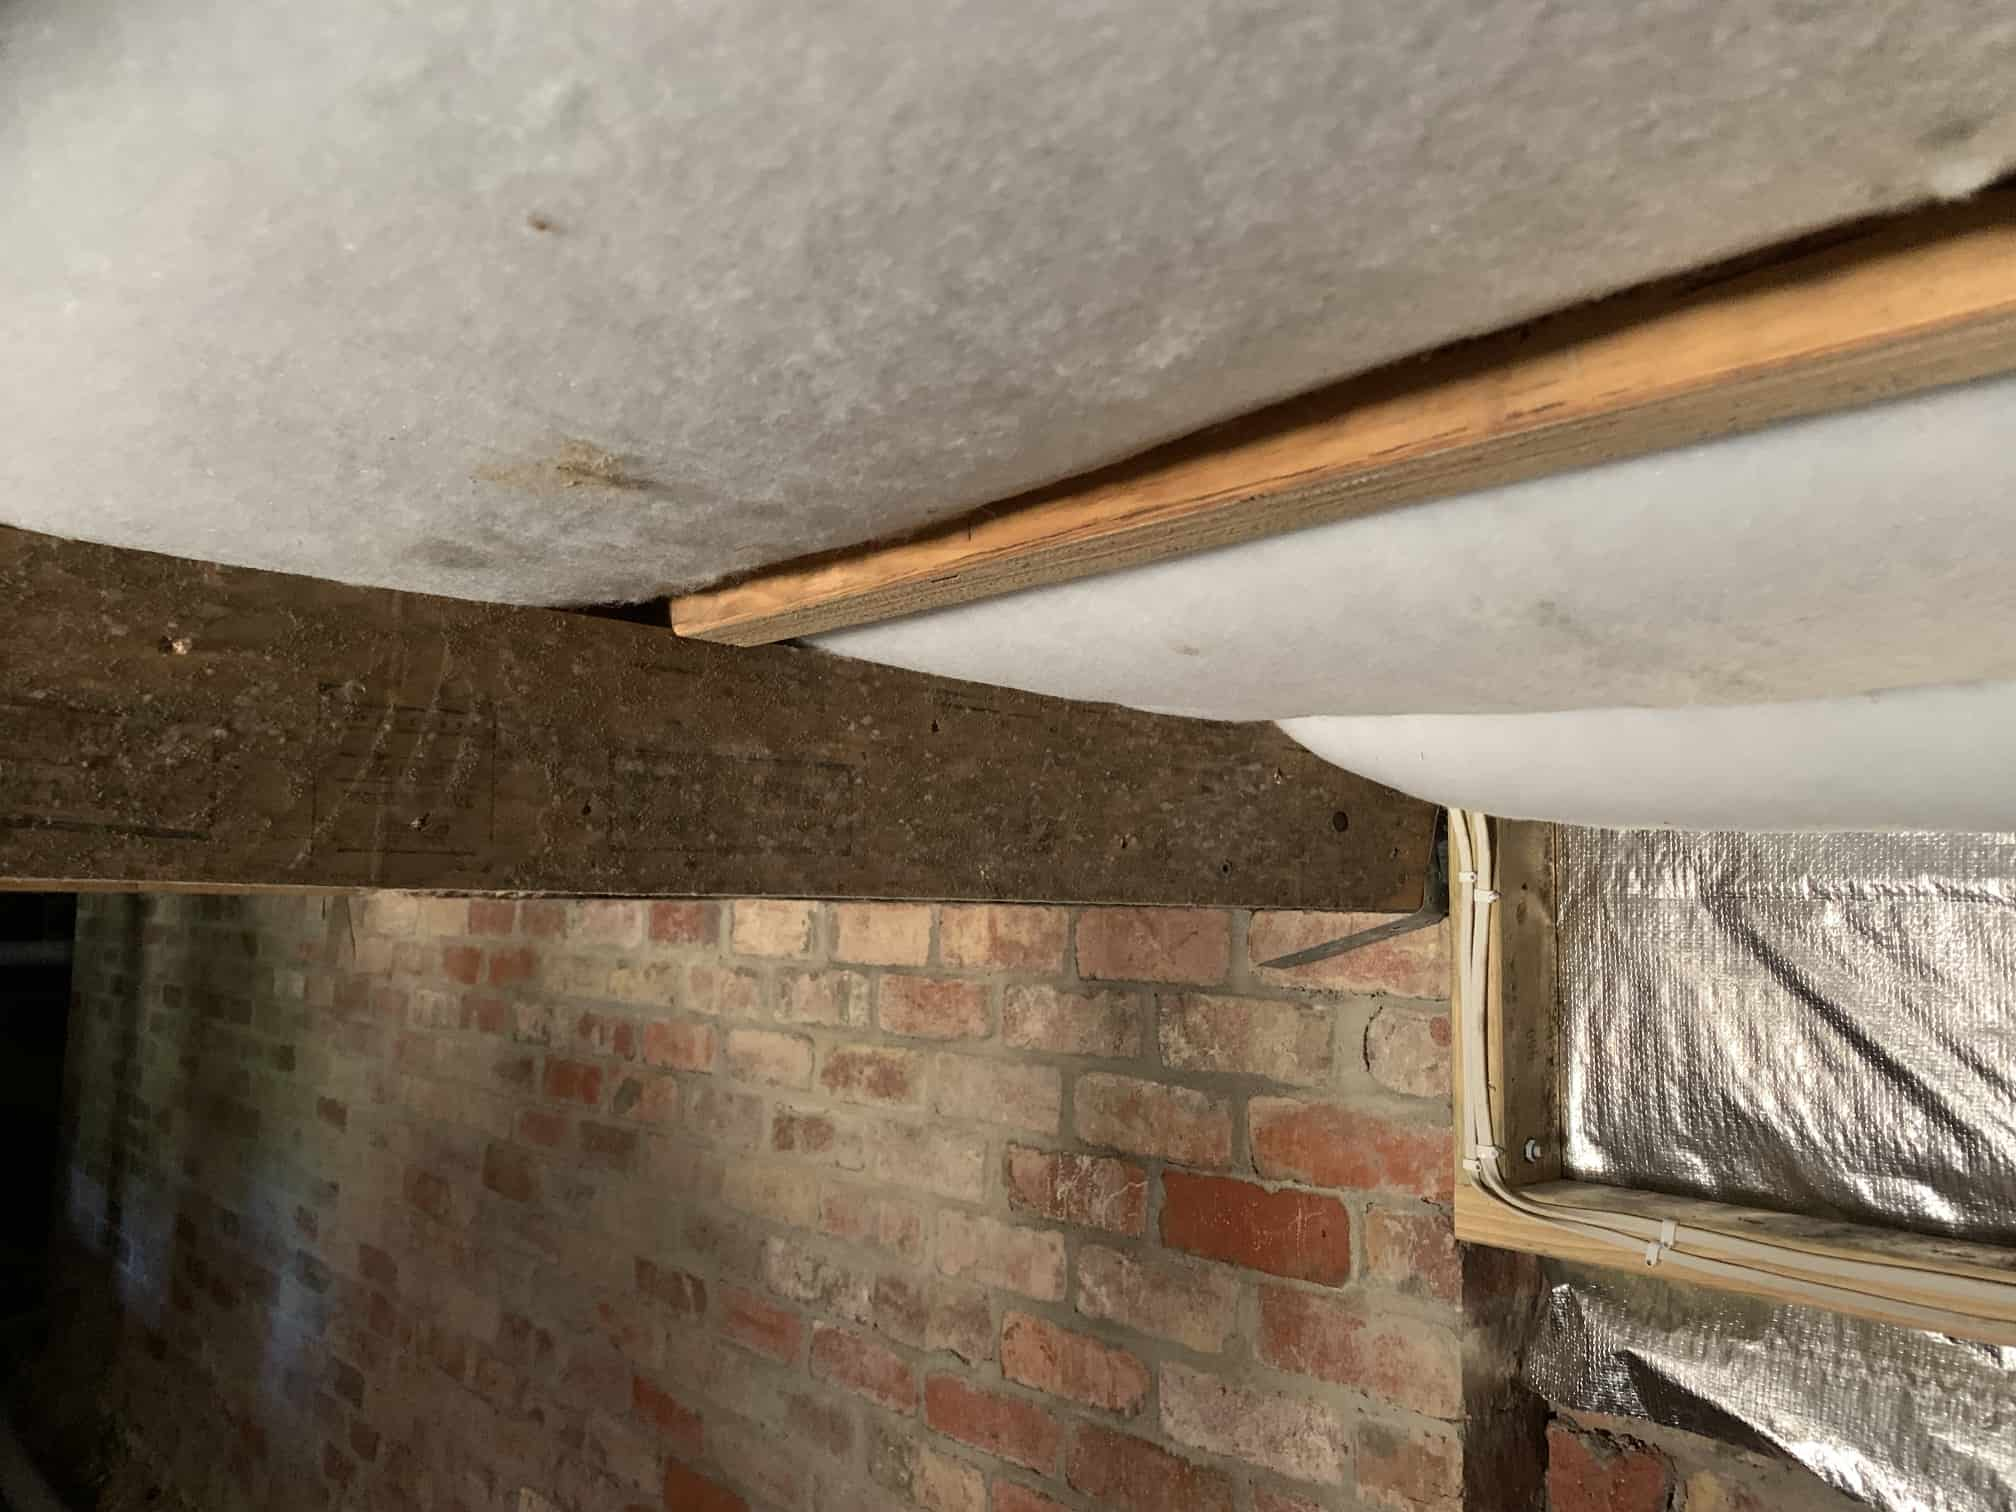 insulation on ceiling